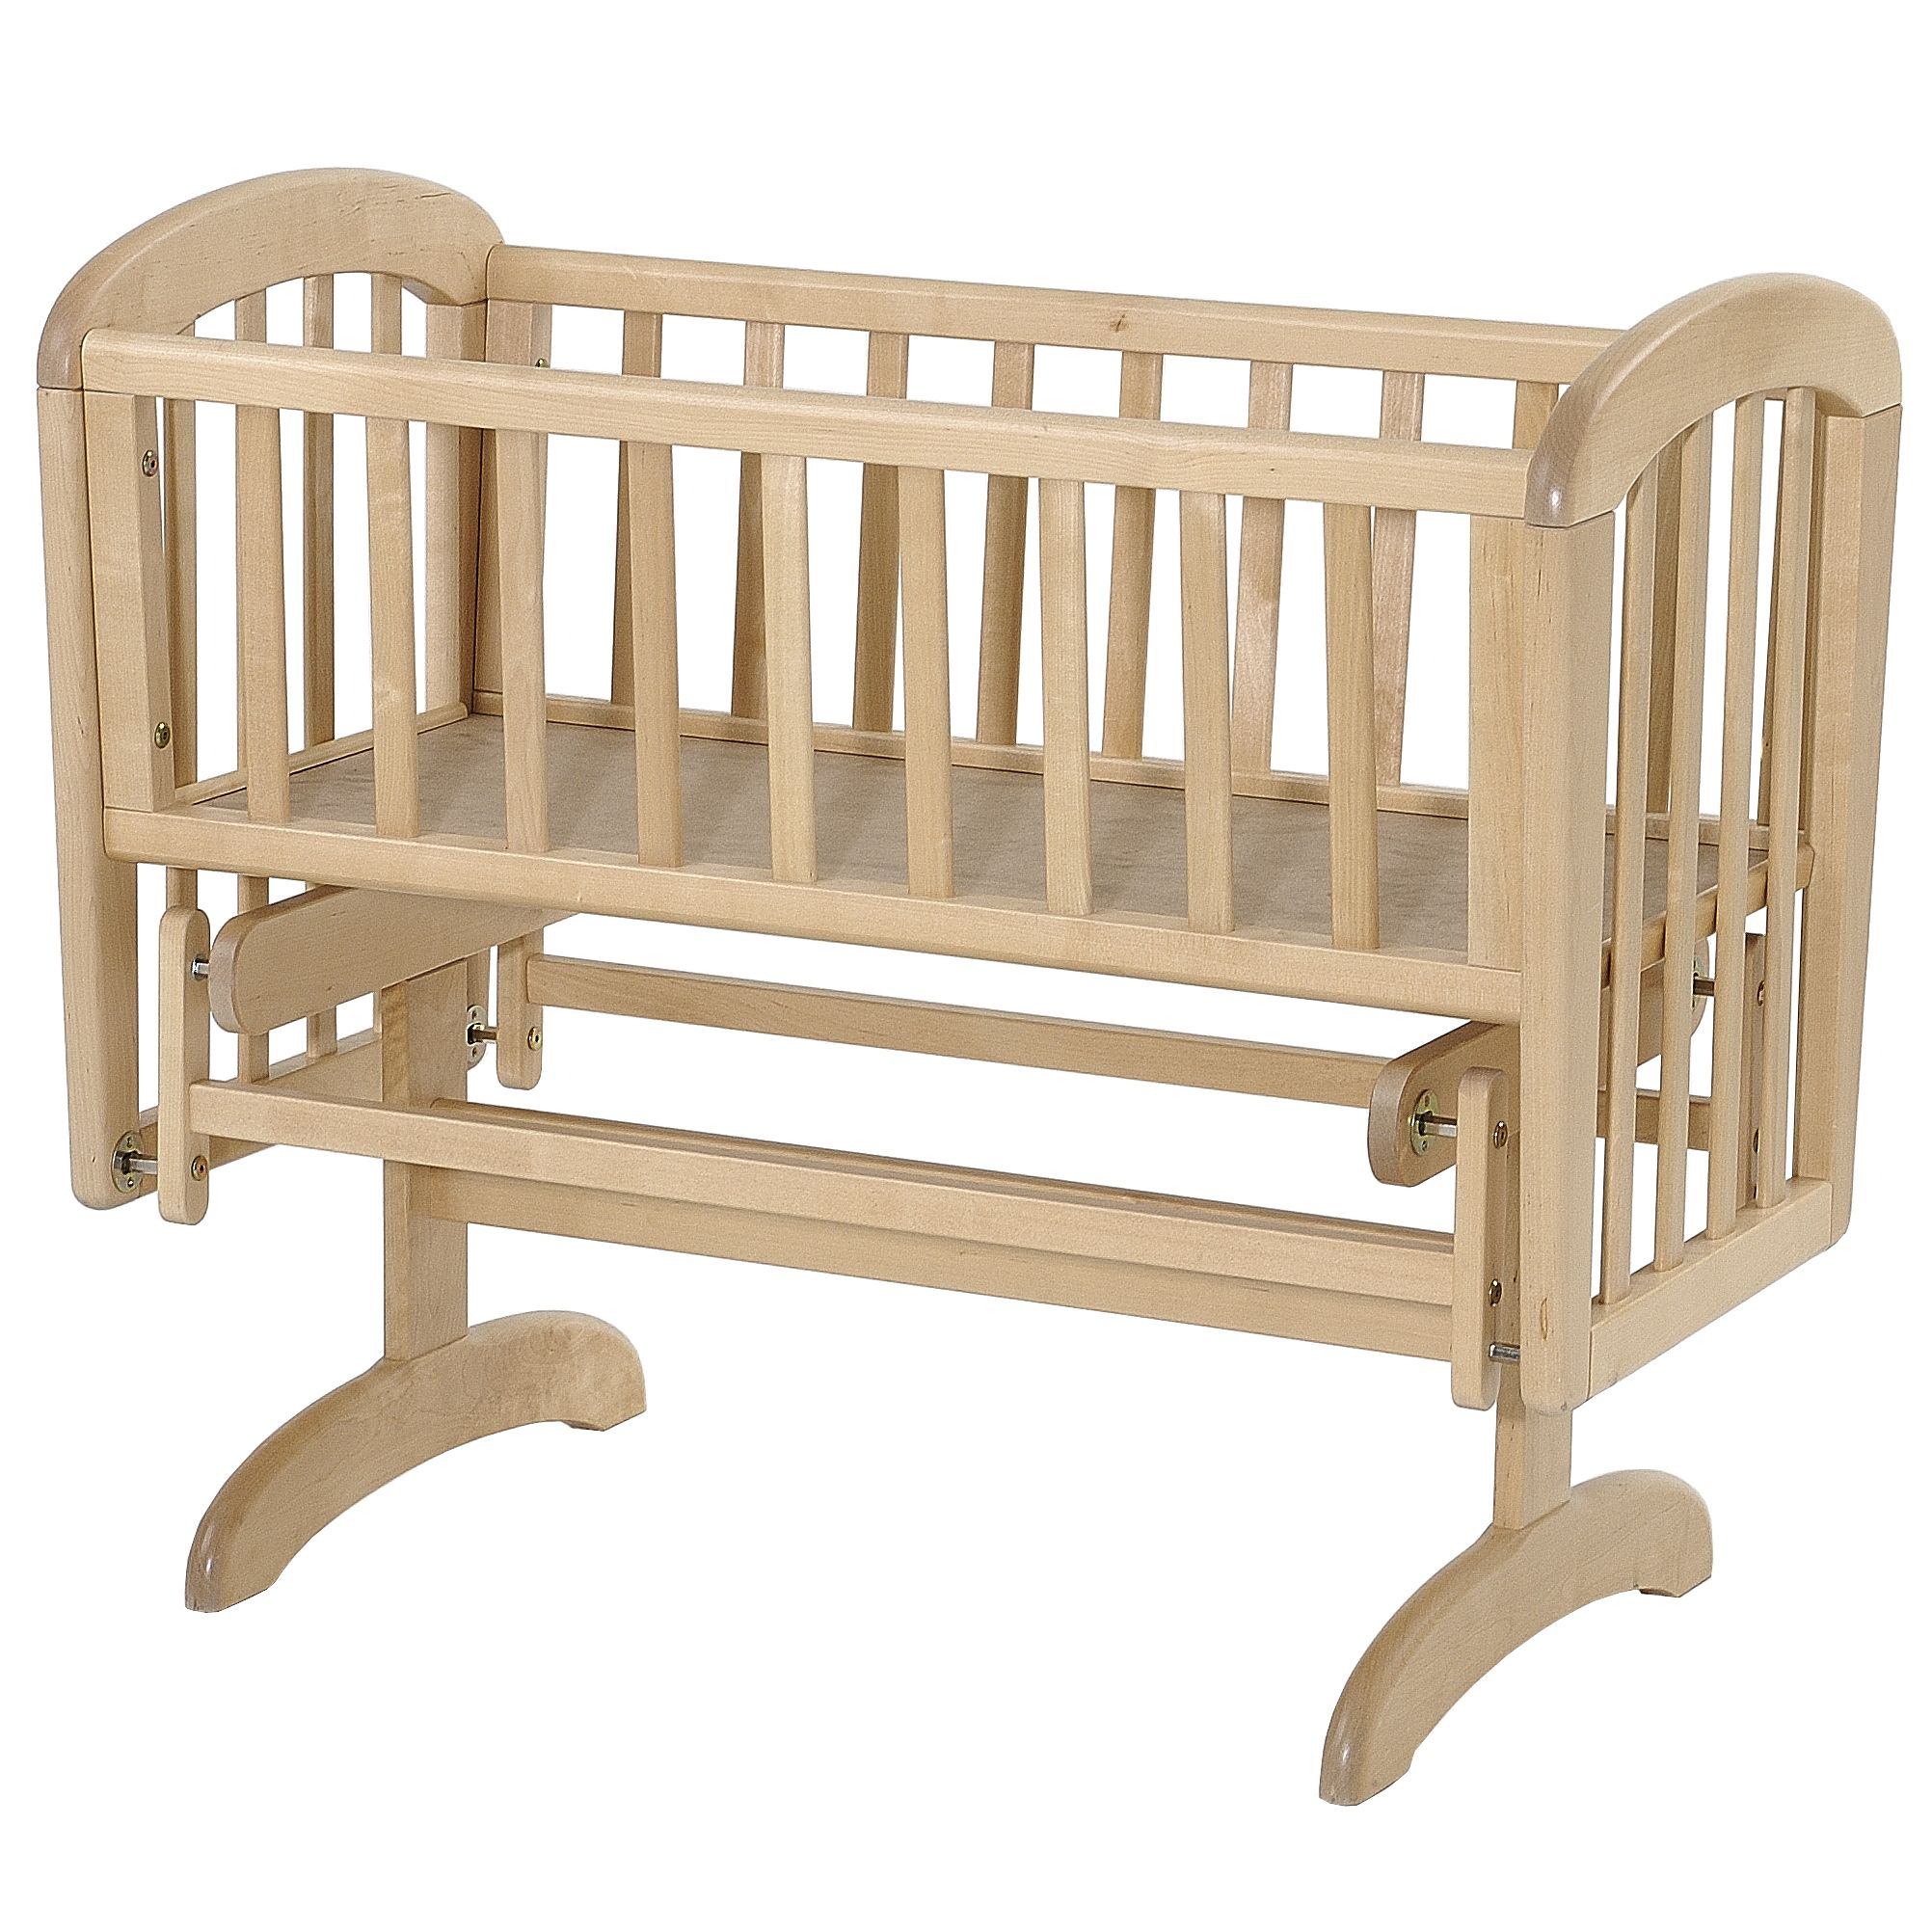 11 Genius Ideas How To Improve Rocking Crib For Babies Cribs Small Baby Cribs Baby Cribs